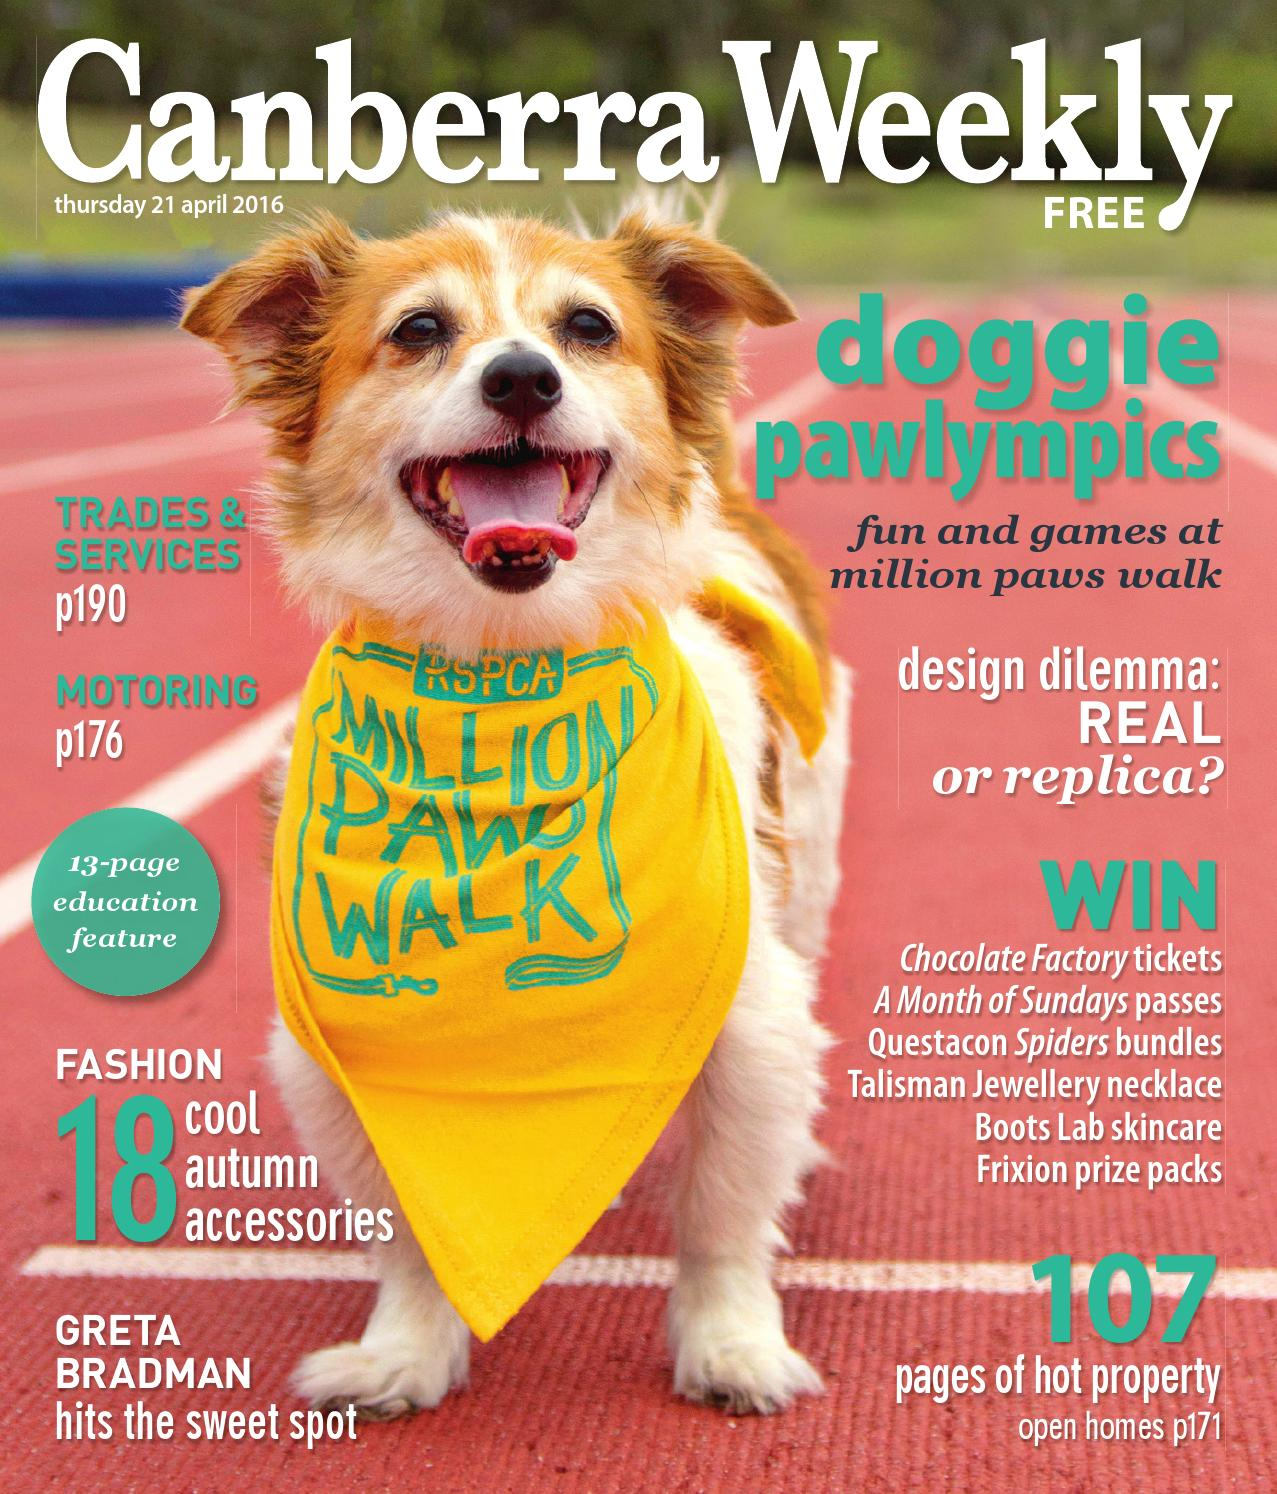 21 April 2016 By Canberra Weekly Magazine Issuu Terry Palmer Premium Towel Bath Ampamp Travel 500g Set2tp1001 Set Of 2 Light Blue